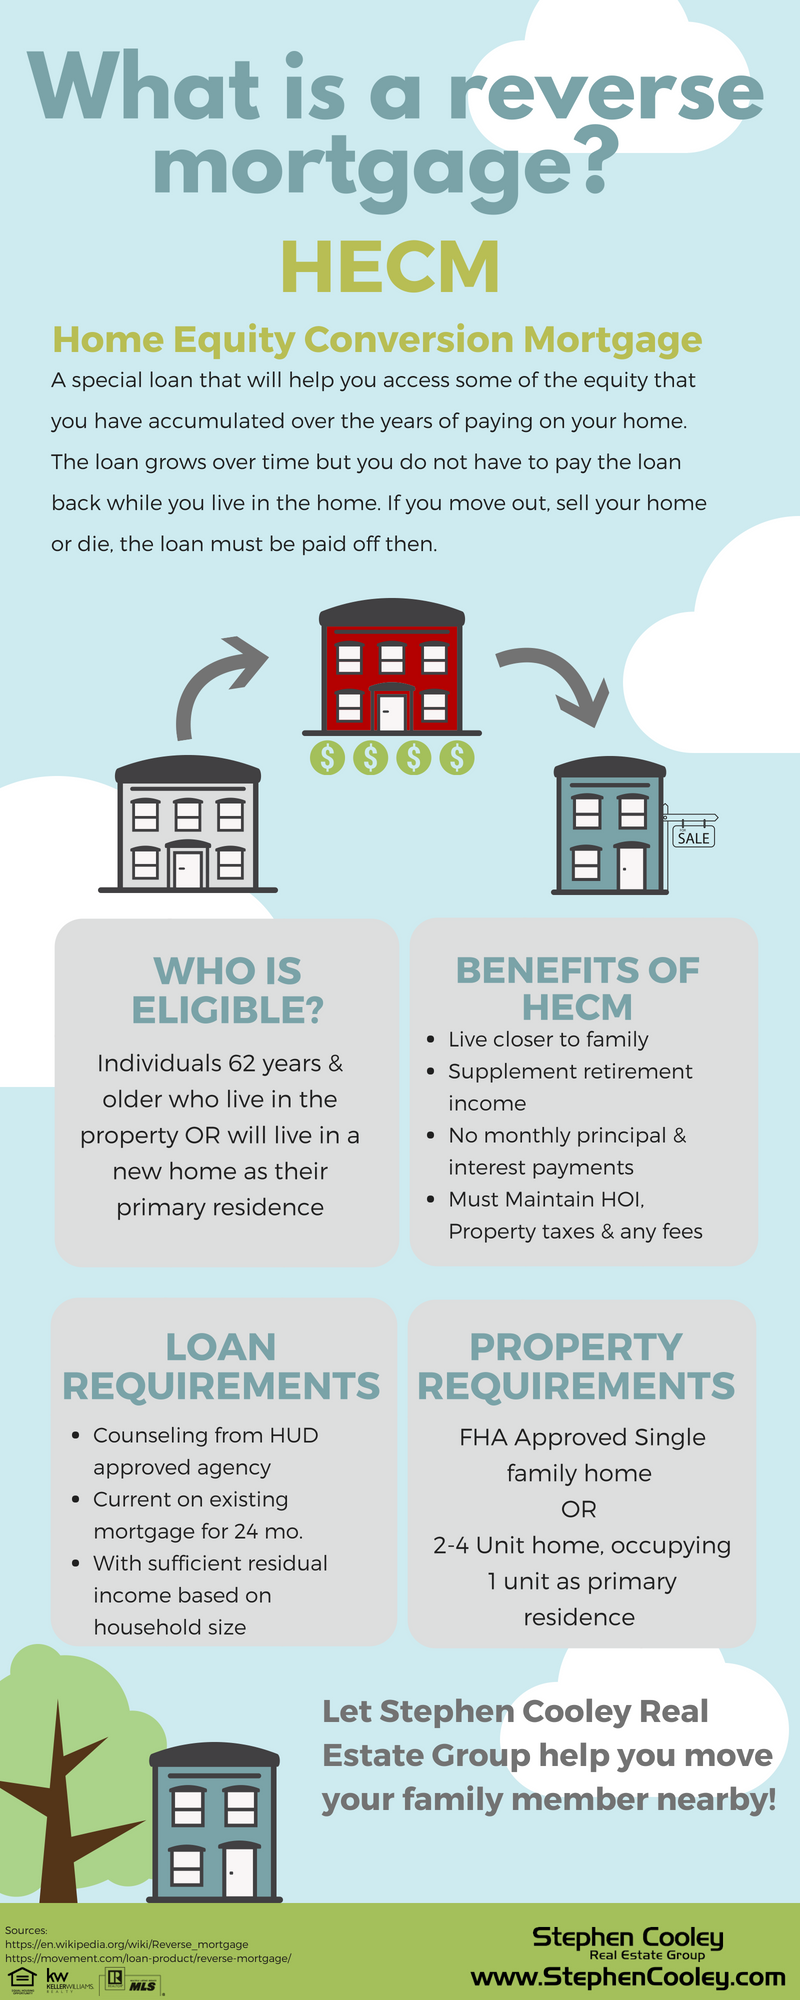 pictures What Is a Reverse Mortgage